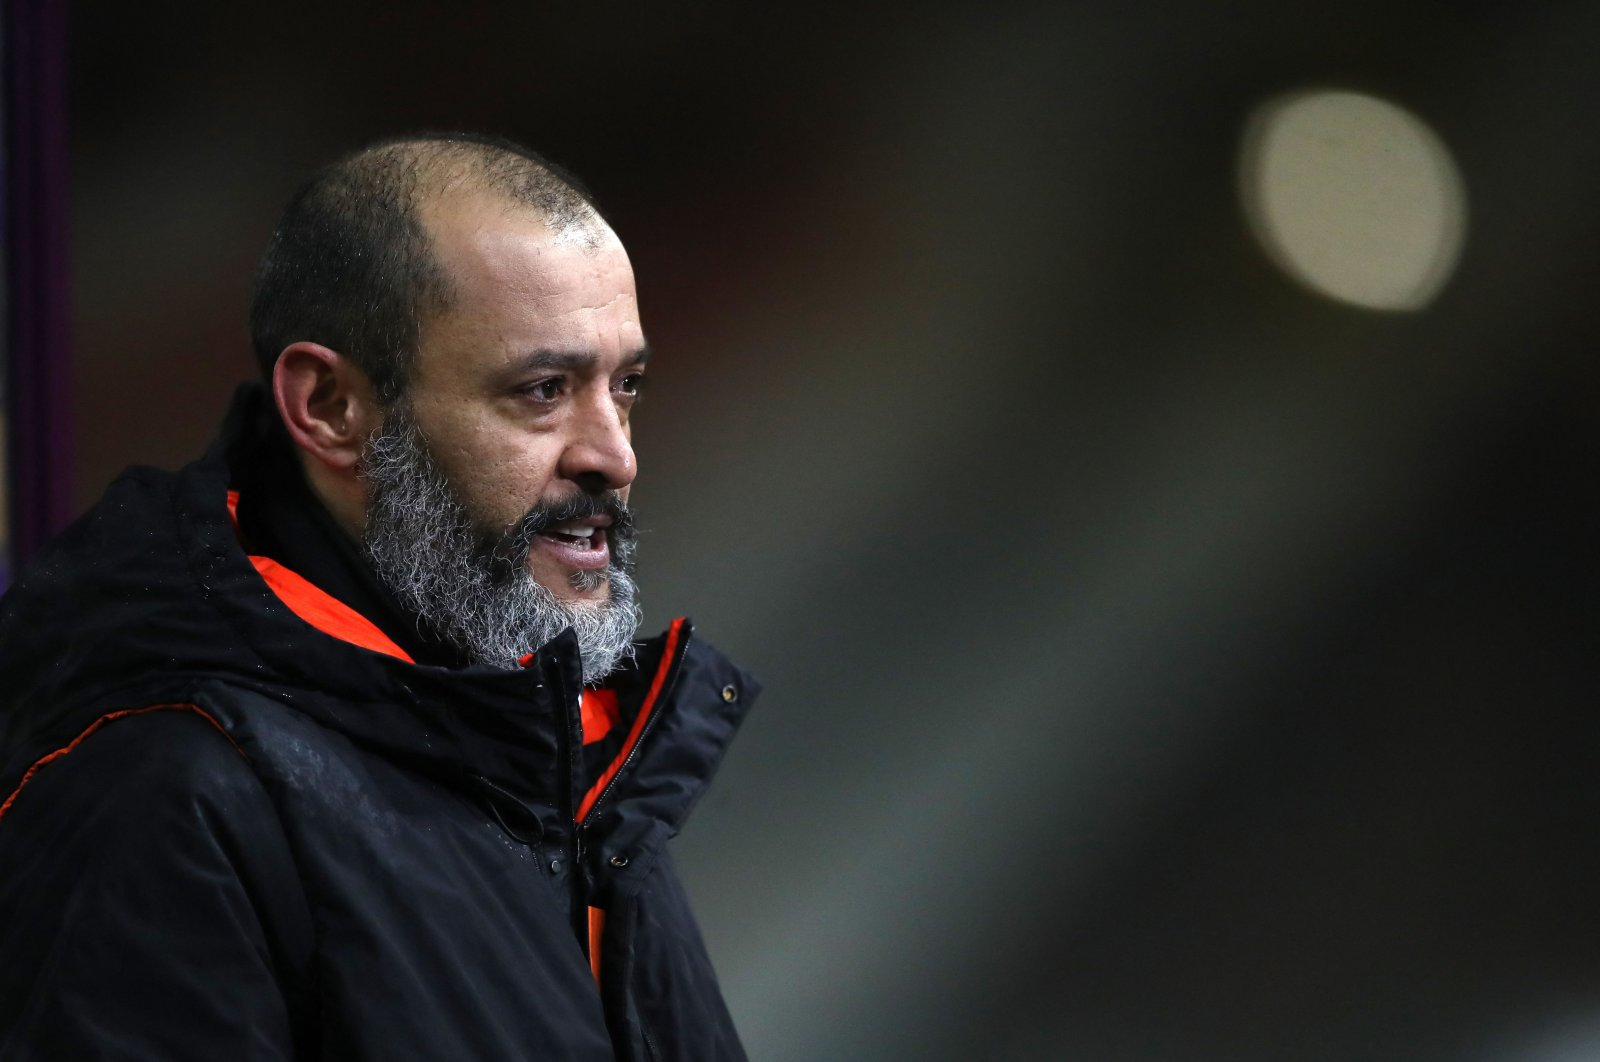 Then-Wolverhampton Wanderers manager Nuno Espirito Santo reacts at the final whistle during the English Premier League match against Arsenal at the Molineux stadium in Wolverhampton, central England, Feb. 2, 2021. (AFP Photo)